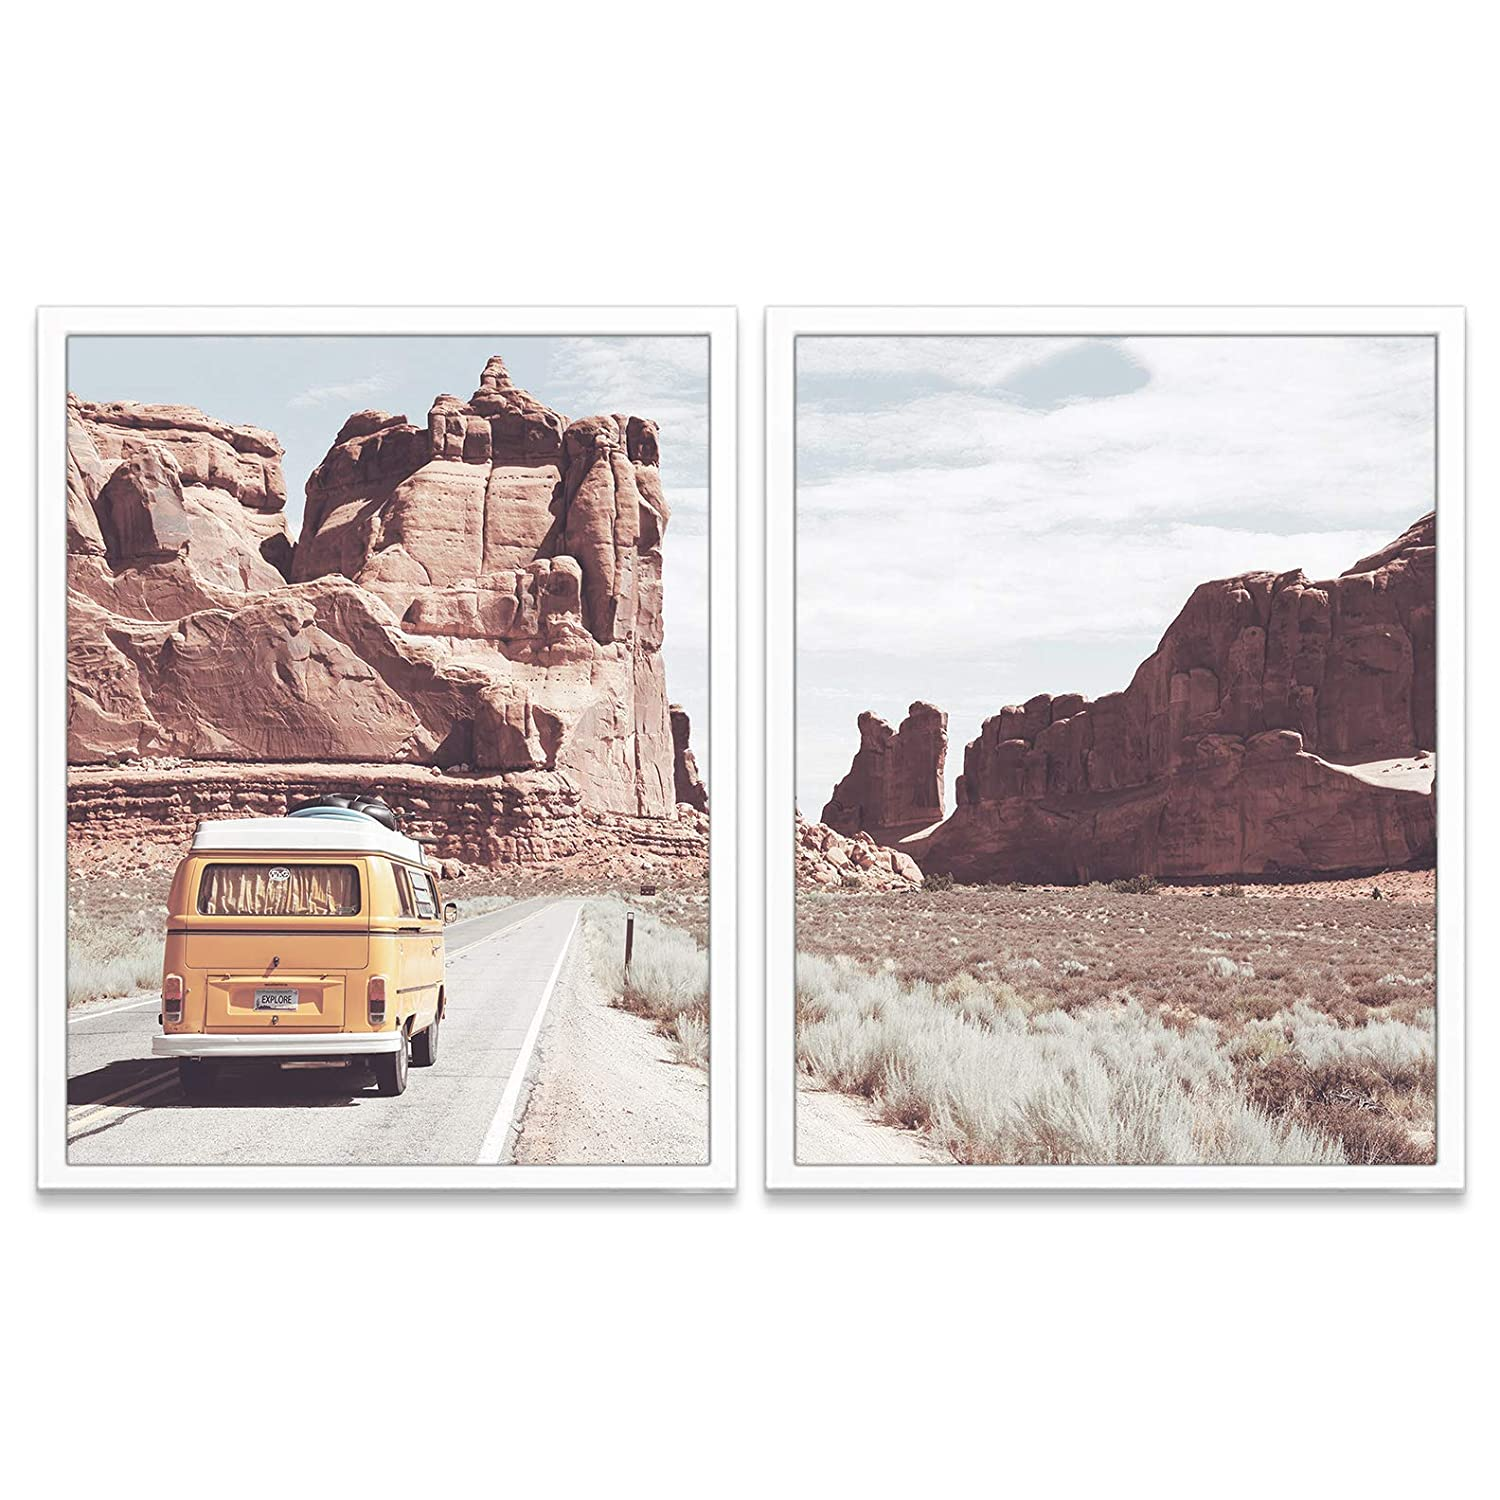 Classic Vintage Antique Van in Arizona Photography Prints, Set of 2, Unframed, Arizona Adventure Wall Art Decor Poster Sign, 8x10